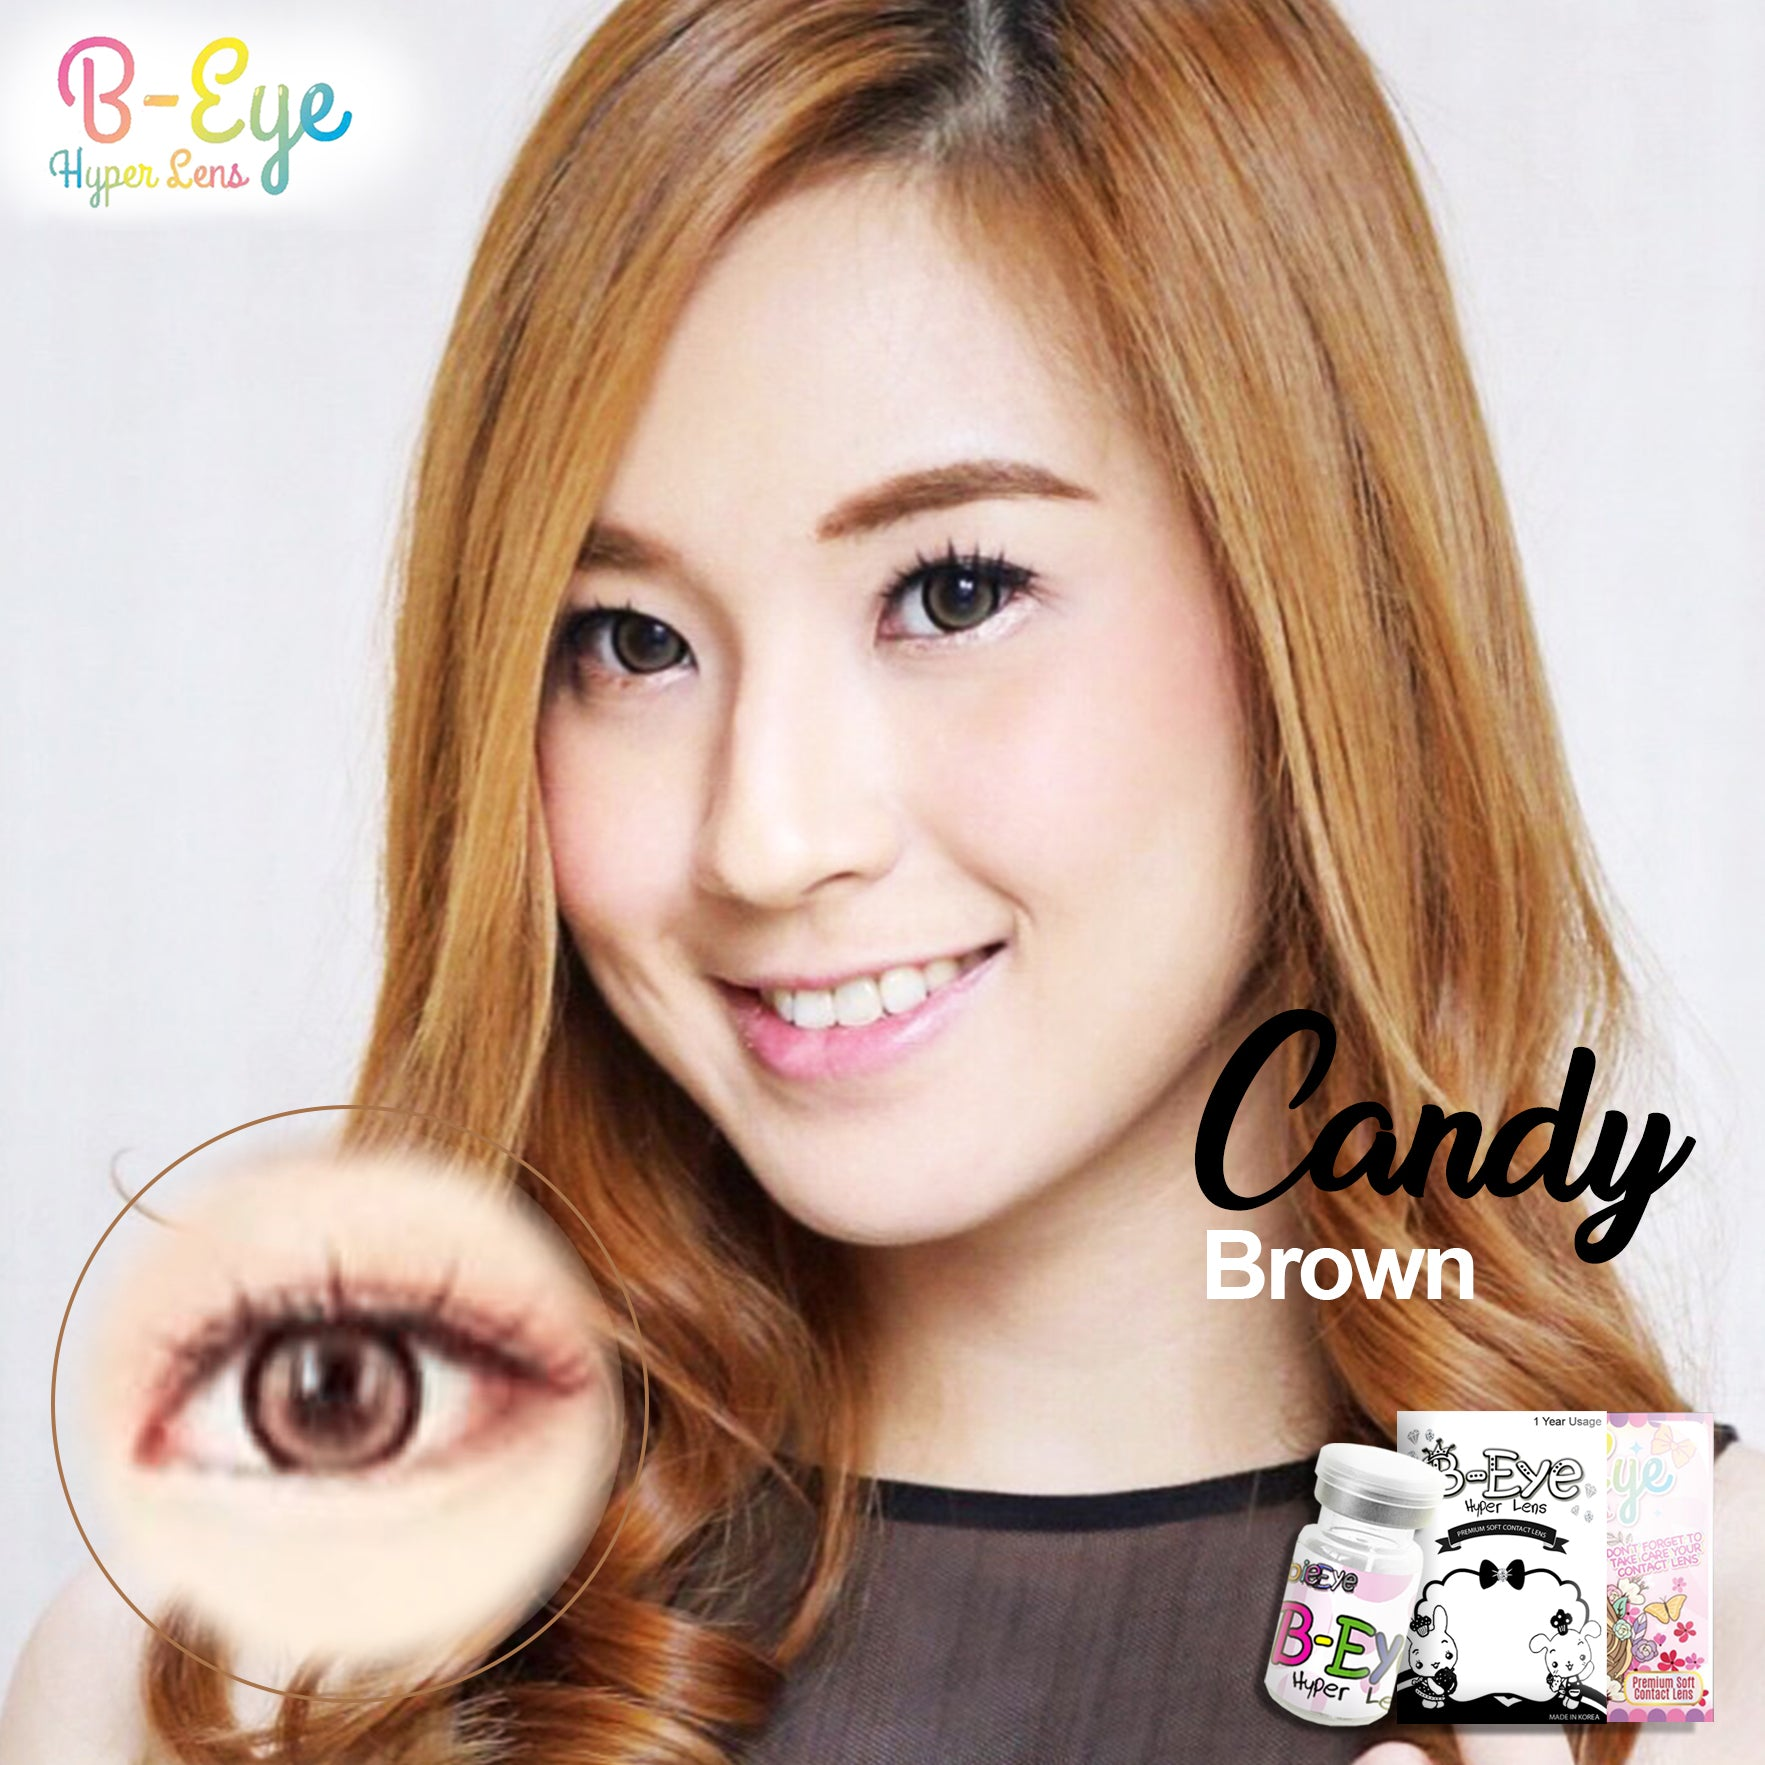 Candy Brown